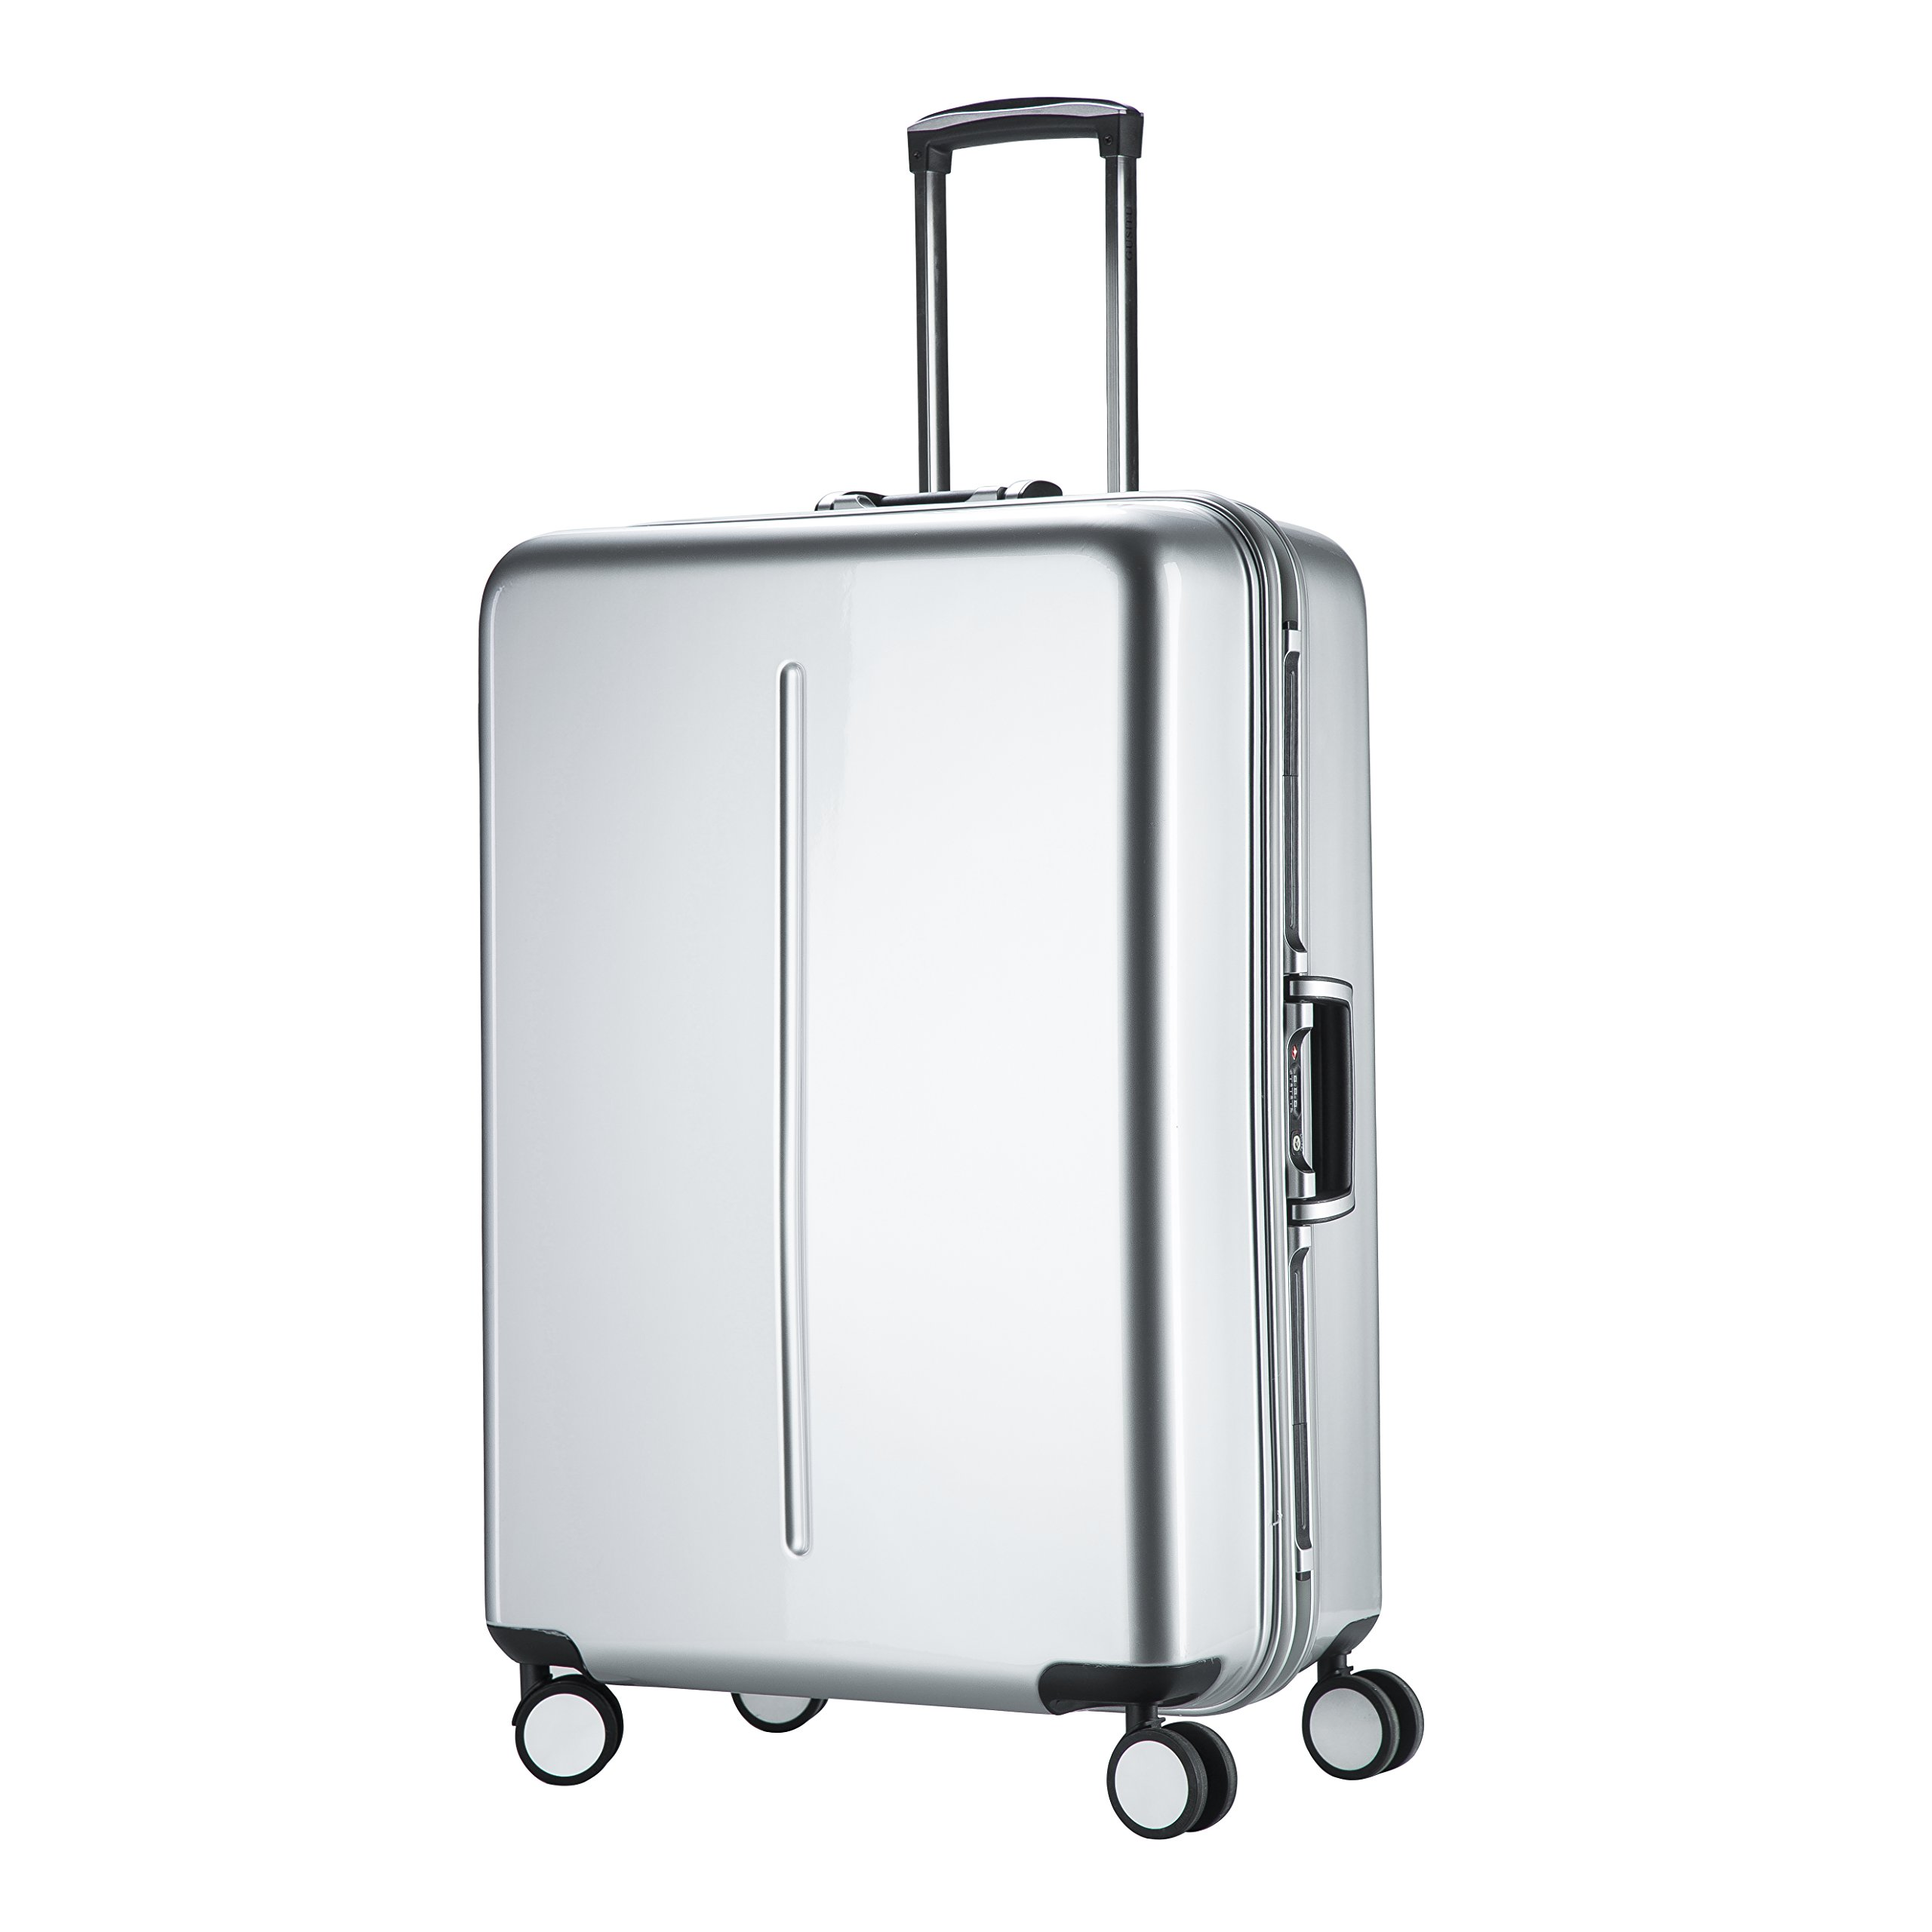 Aluminum Frame Carry On Luggage, Hardside Spinner PC Suitcase TSA Approved 20'', Silver